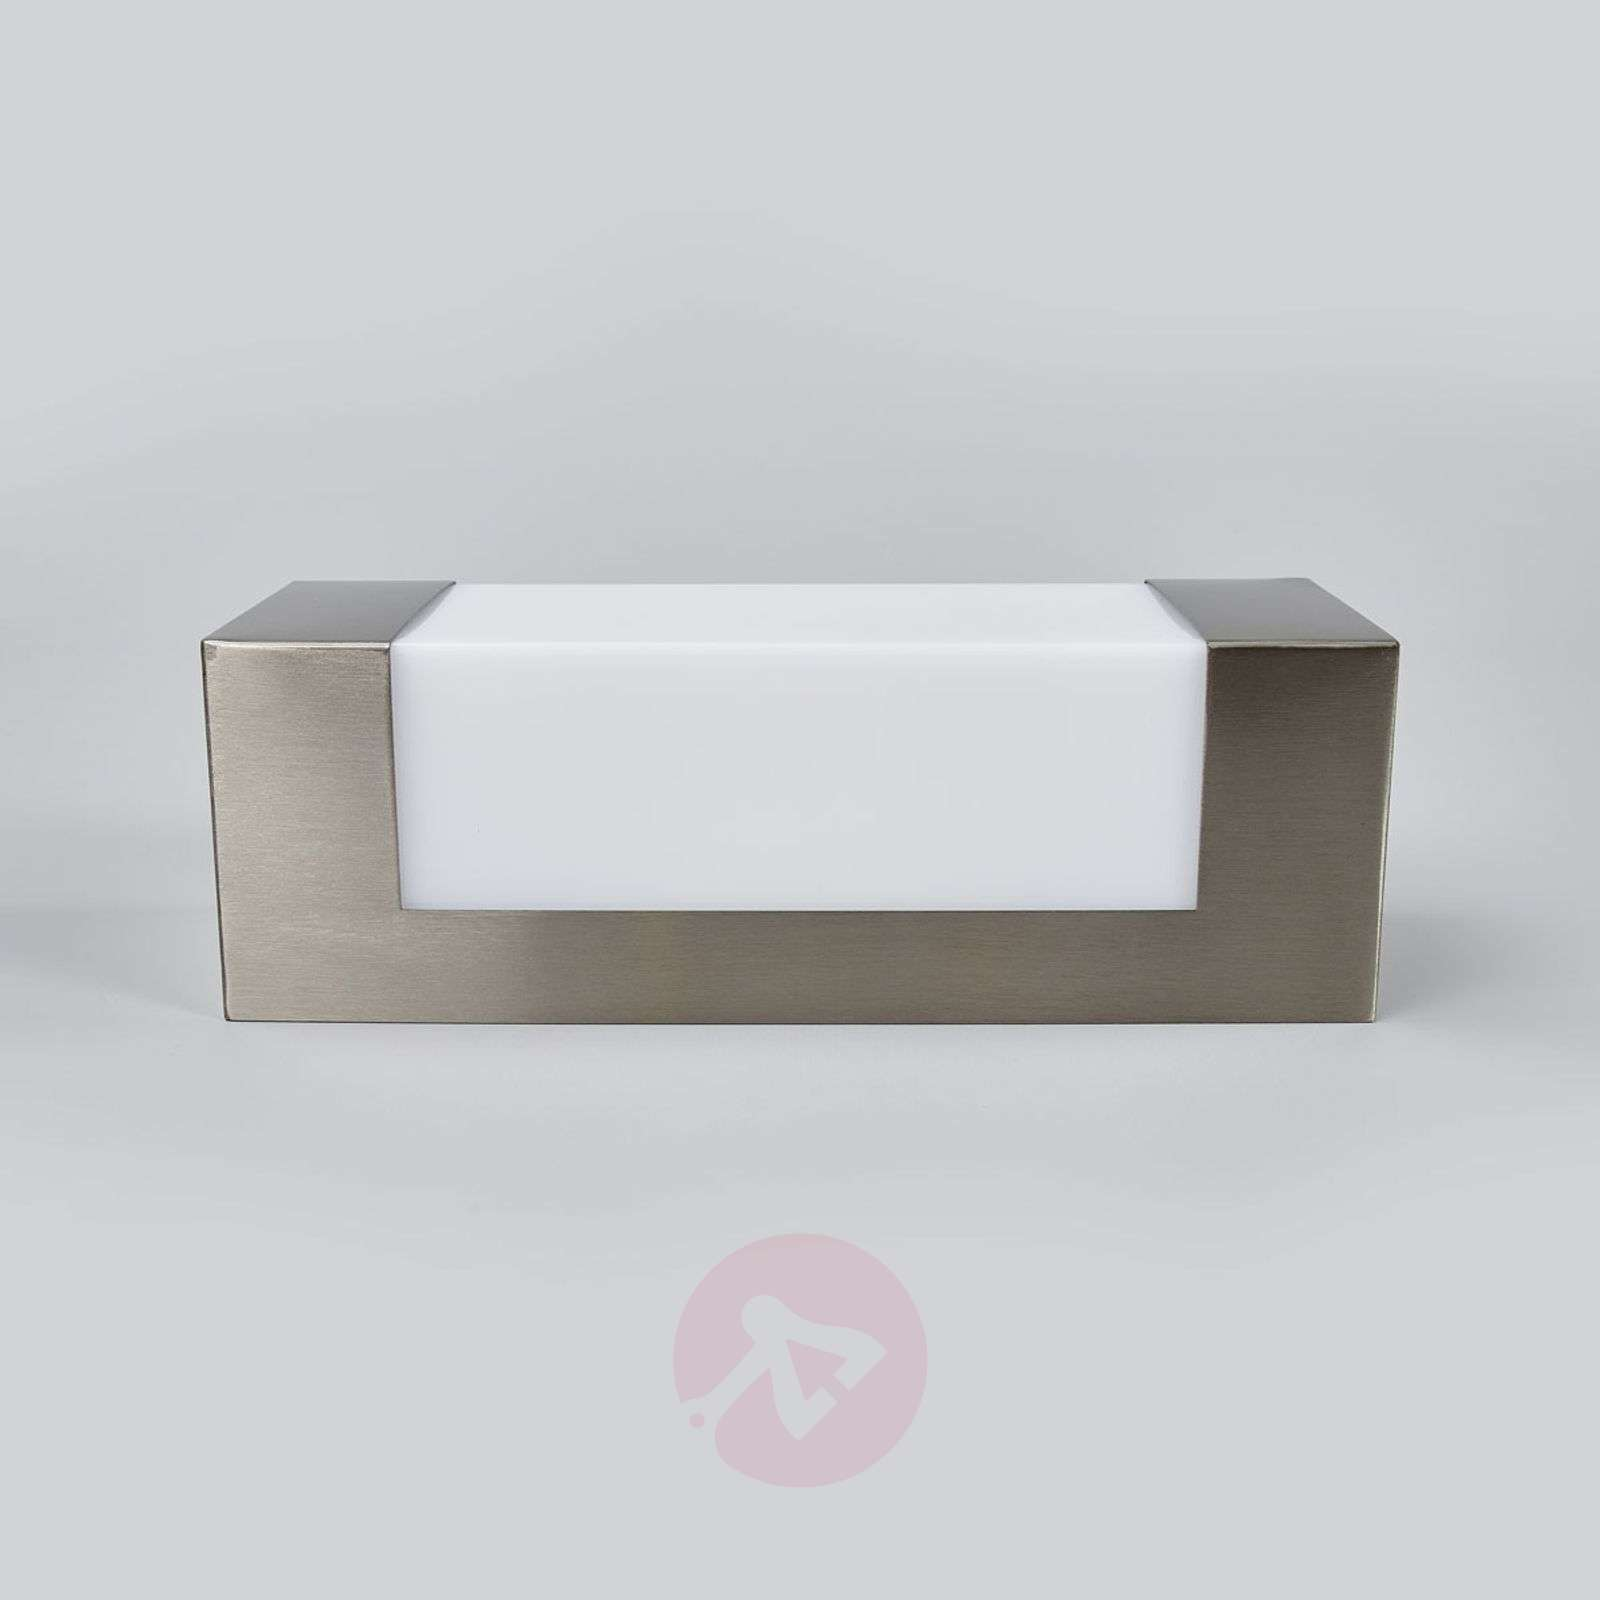 Severina LED wall lamp made of stainless steel-9977039-01